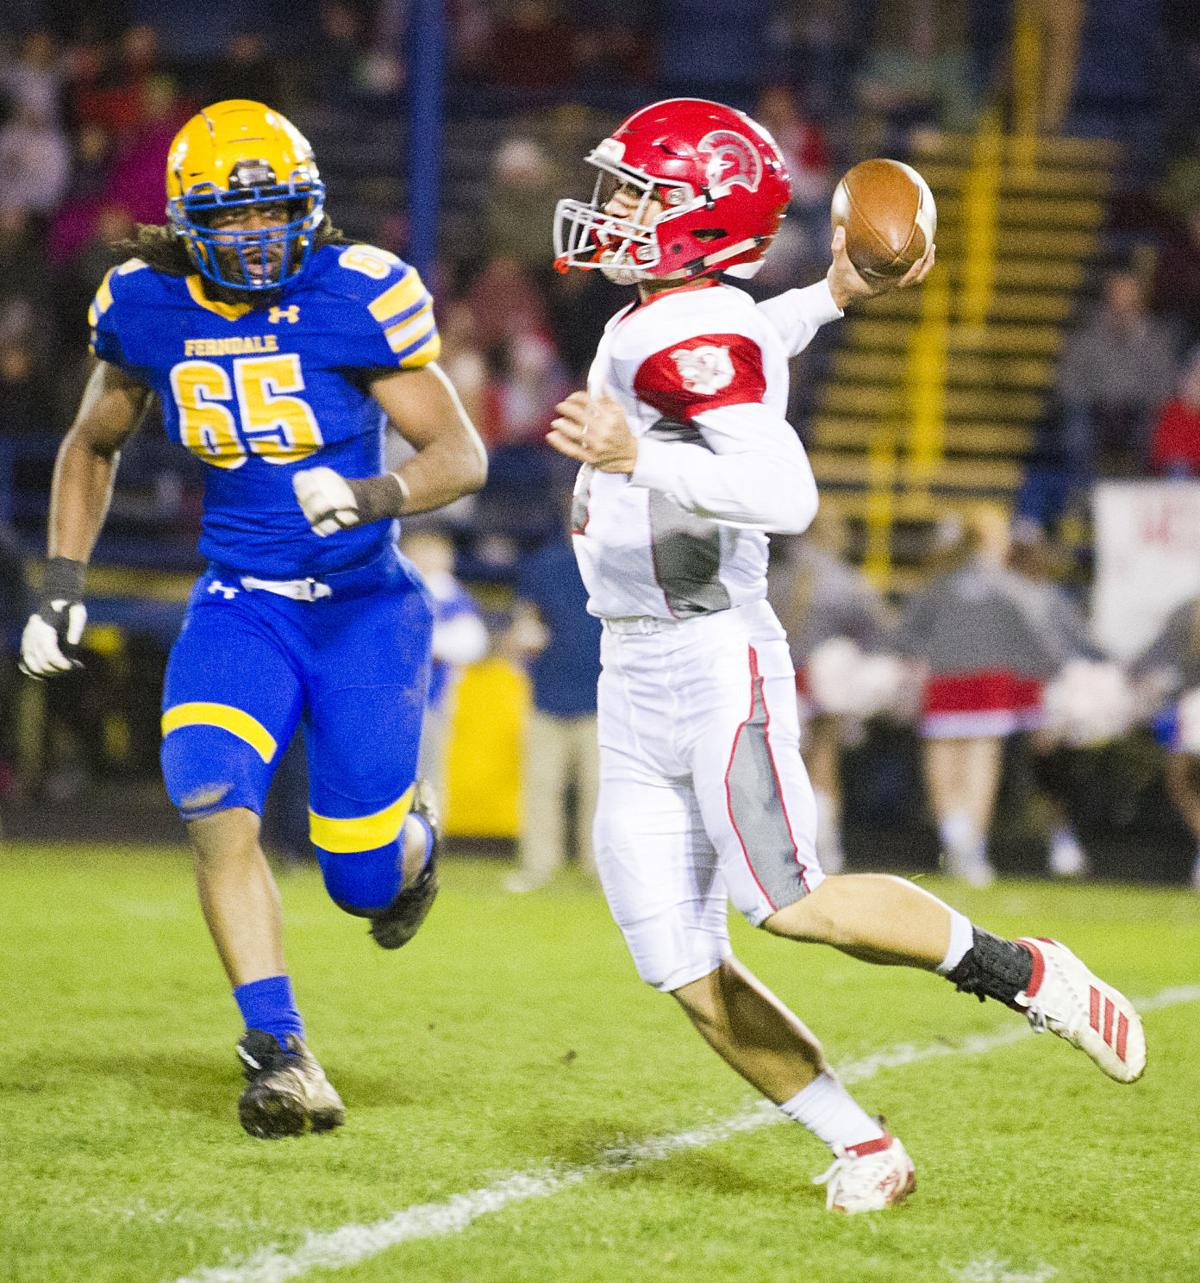 Football: Stanwood at Ferndale, 10.25.19